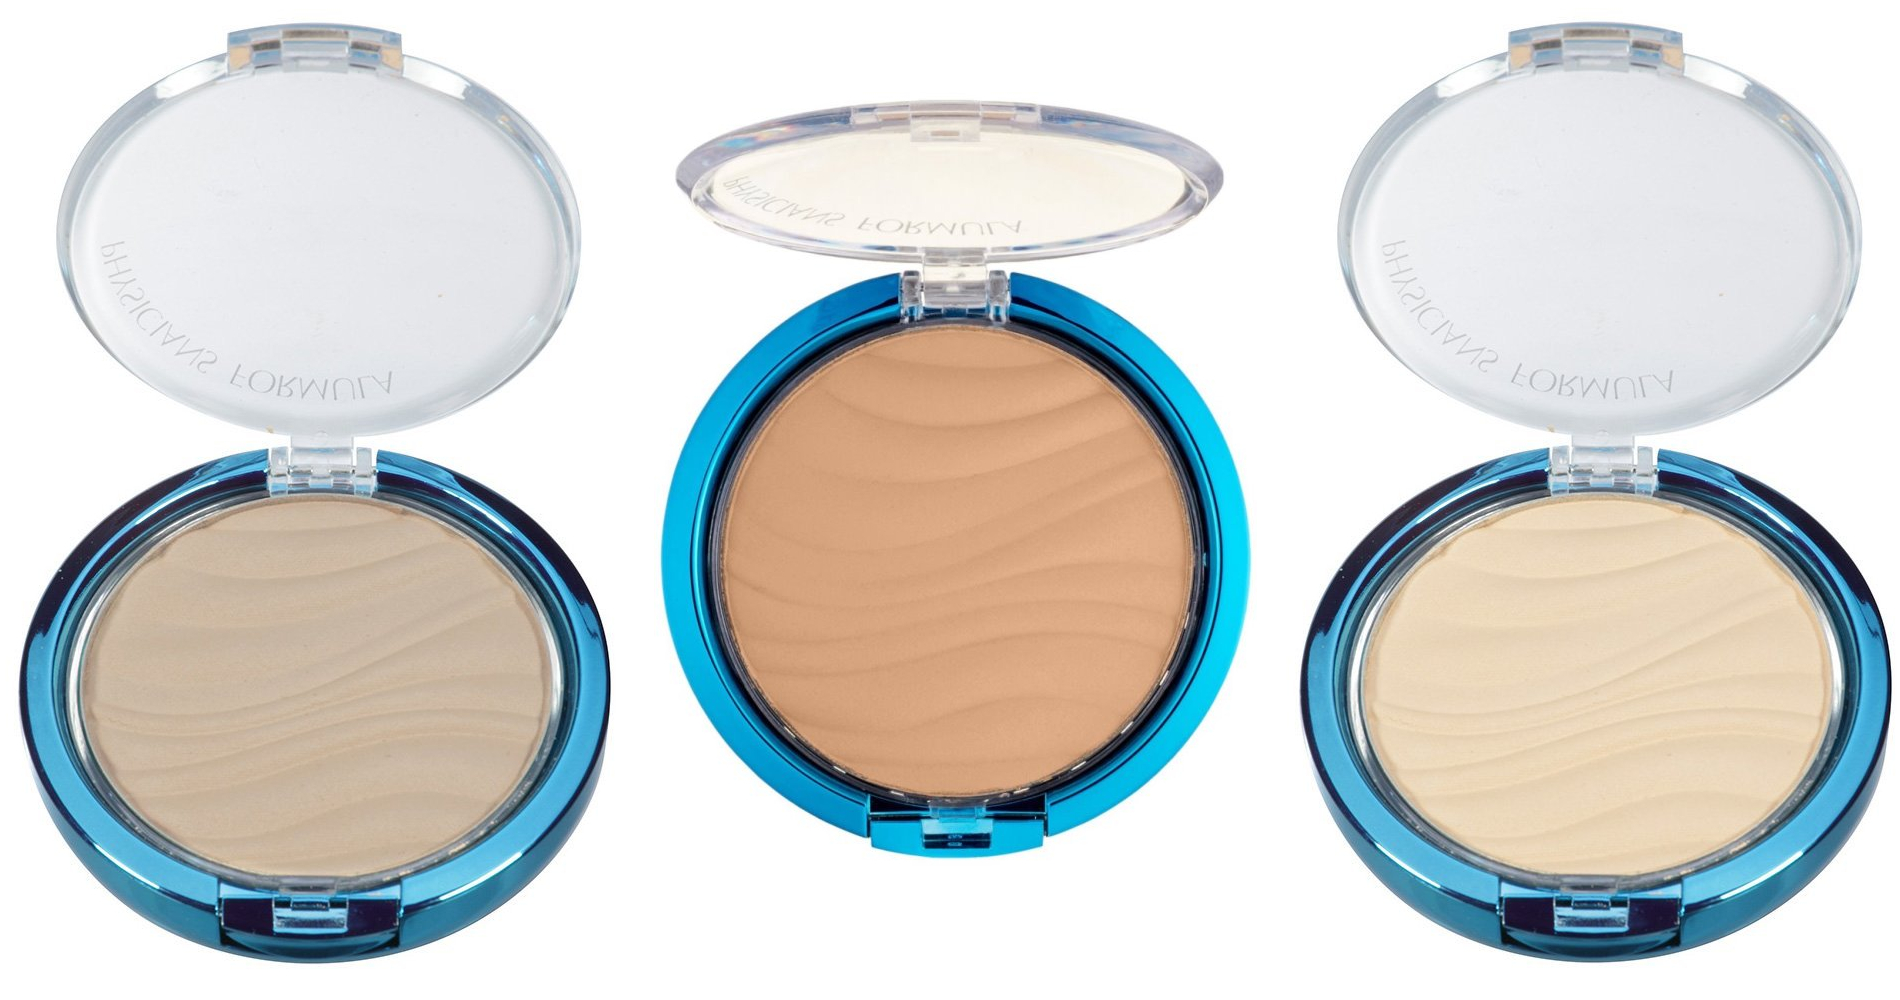 Physicians Formula Mineral Wear®Talc-Free Mineral Airbrushing Pressed Powder SPF 30